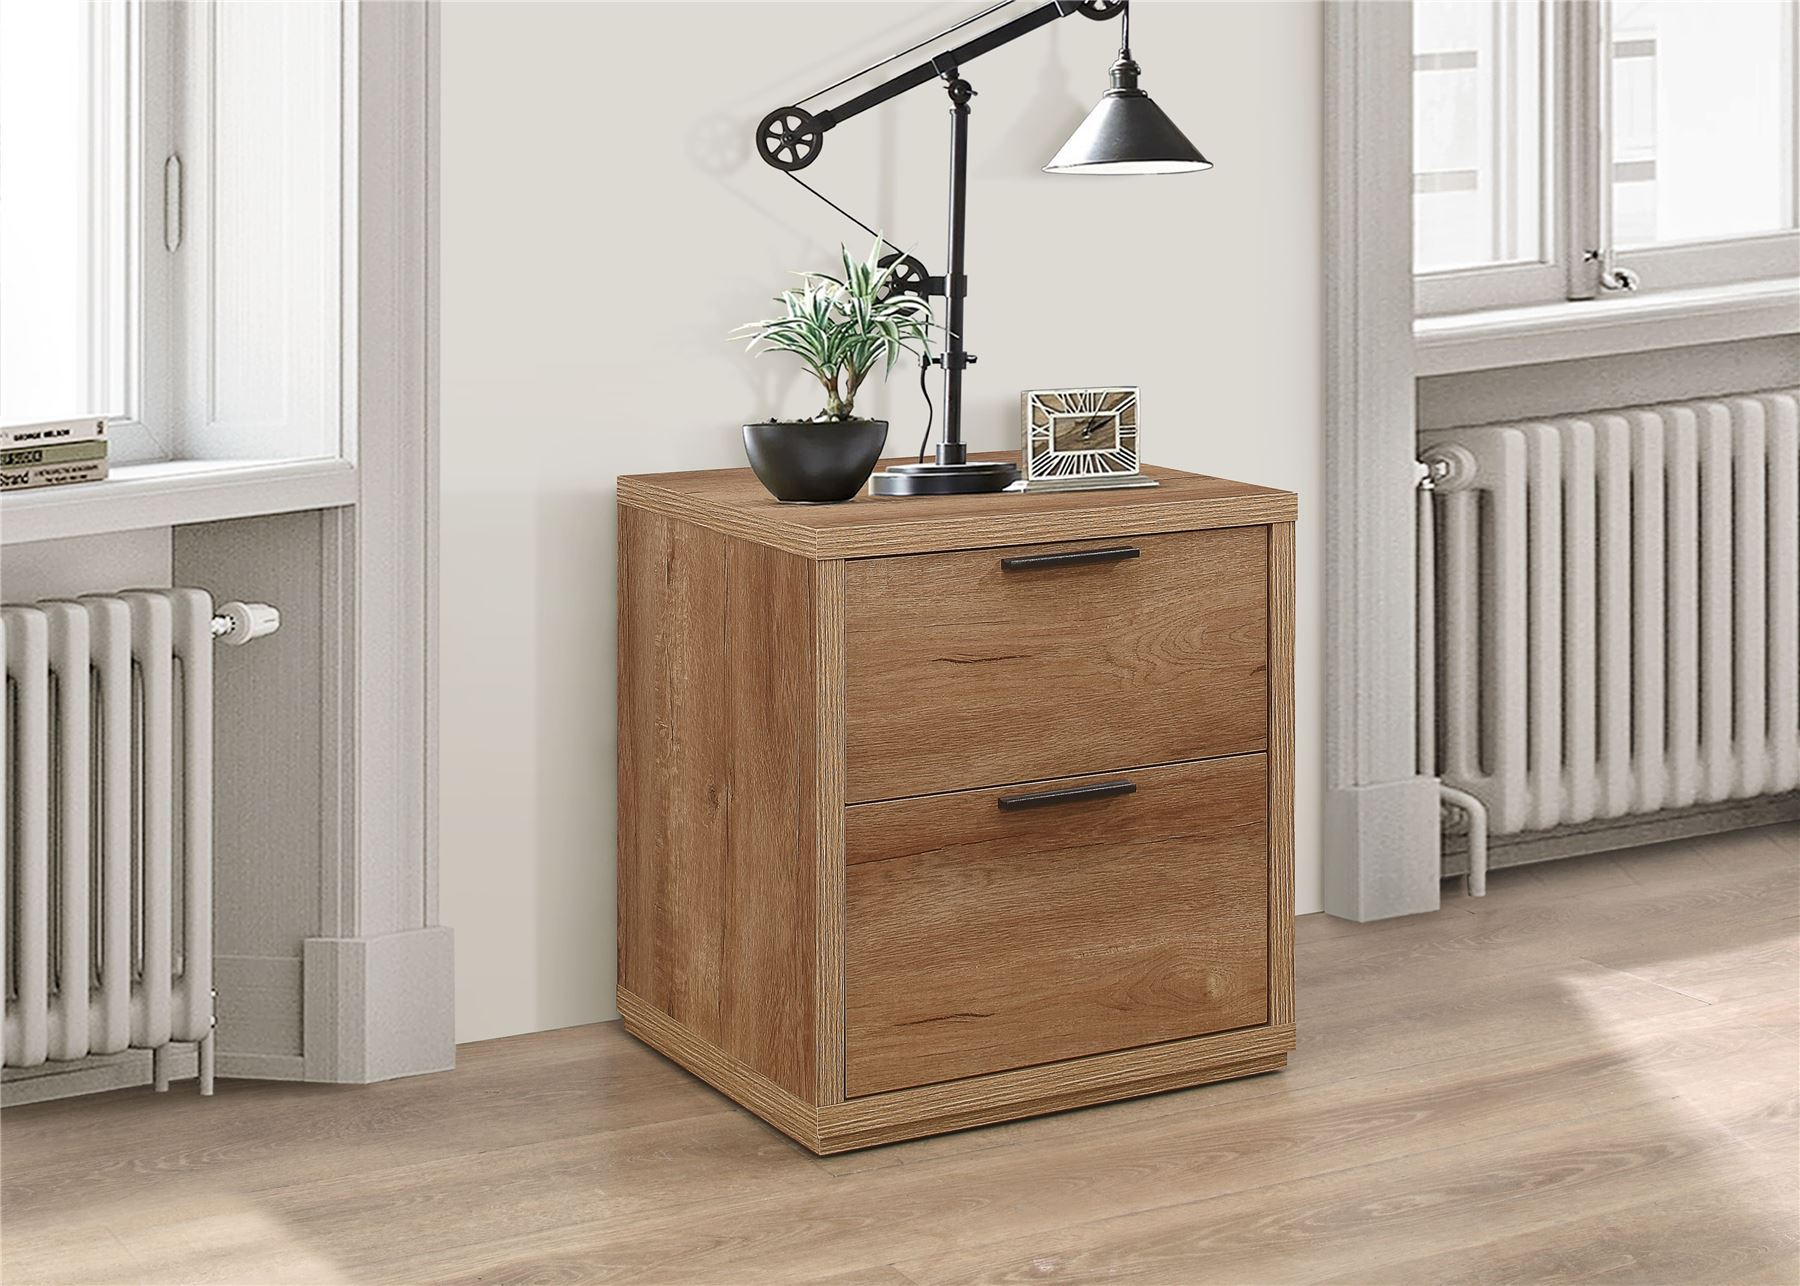 Birlea Stockwell Rustic Oak 2 Drawer Bedside Chest Urban Industrial design